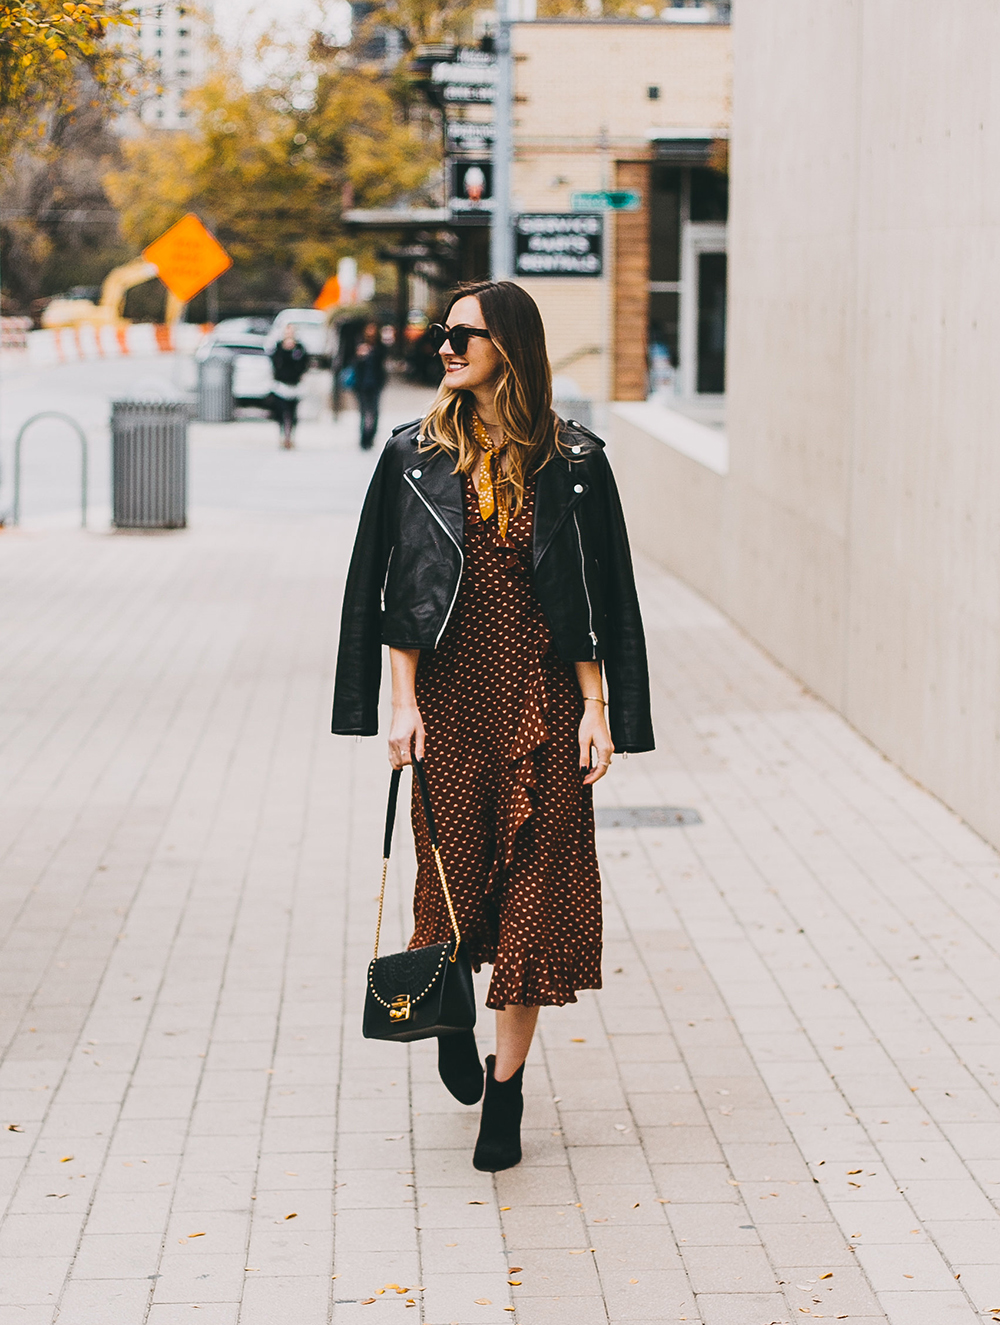 livvyland-blog-olivia-watson-austin-texas-fashion-blogger-urban-outfitters-wrap-dress-sezane-leather-jacket-fall-outfit-idea-7